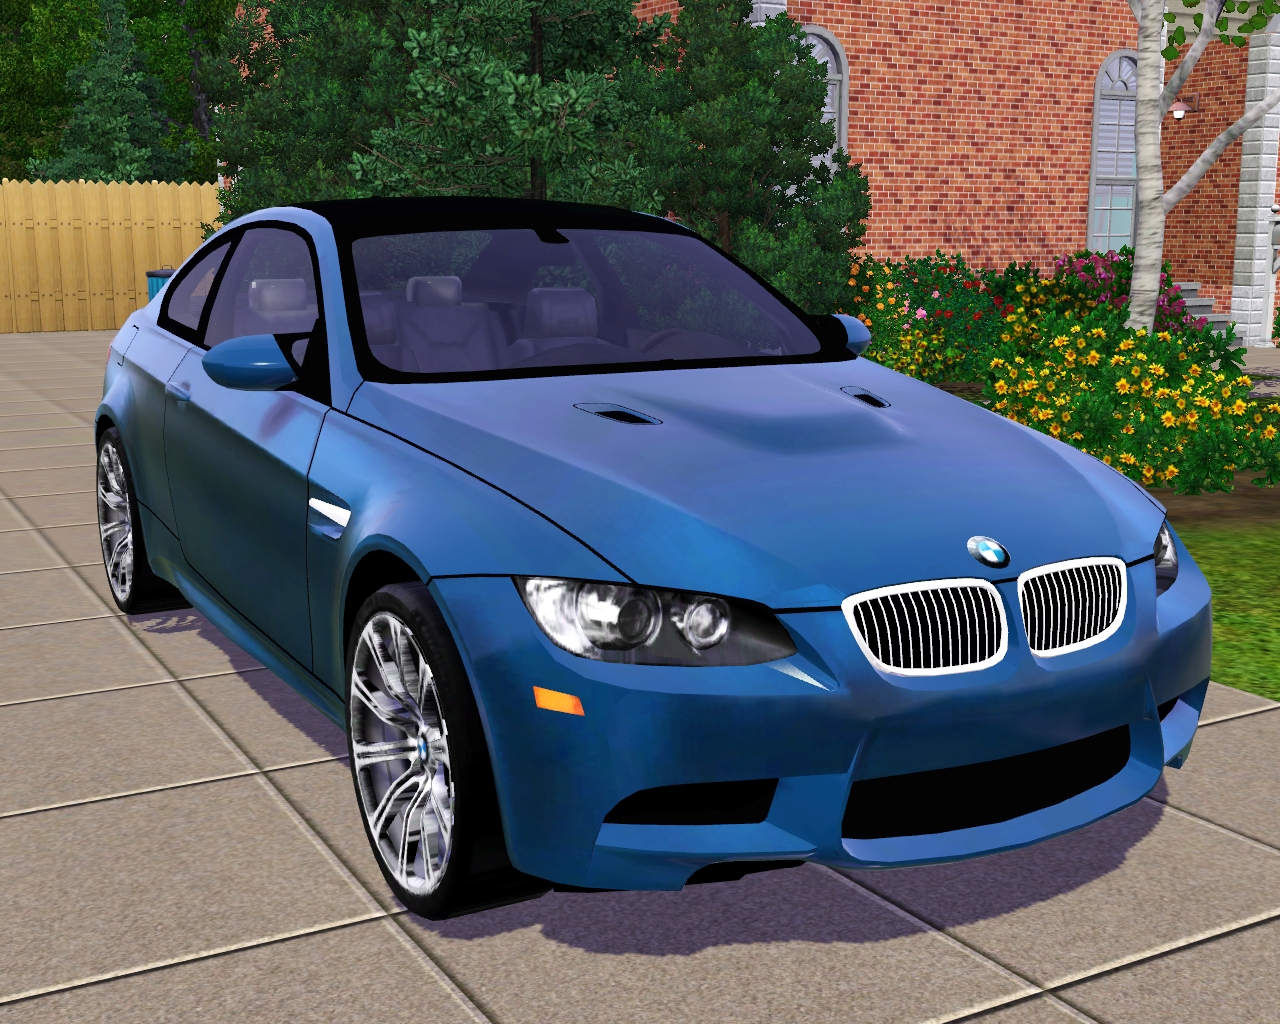 2009 BMW M3 Coupe by Fresh-Prince